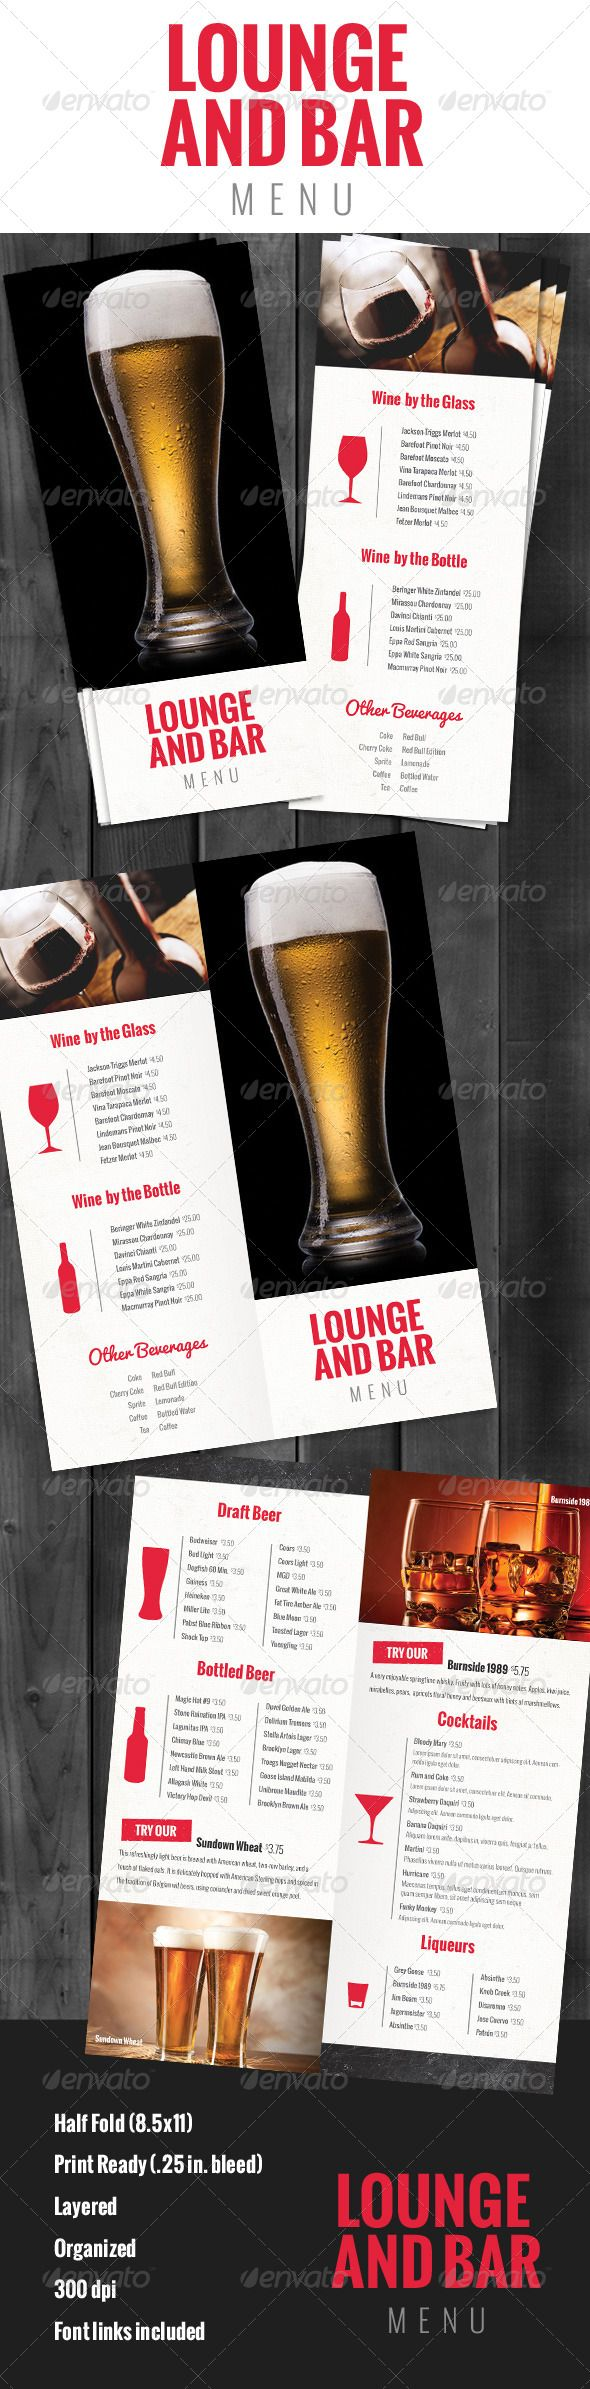 Lounge Bar Drink Menu – Drinks Menu Template